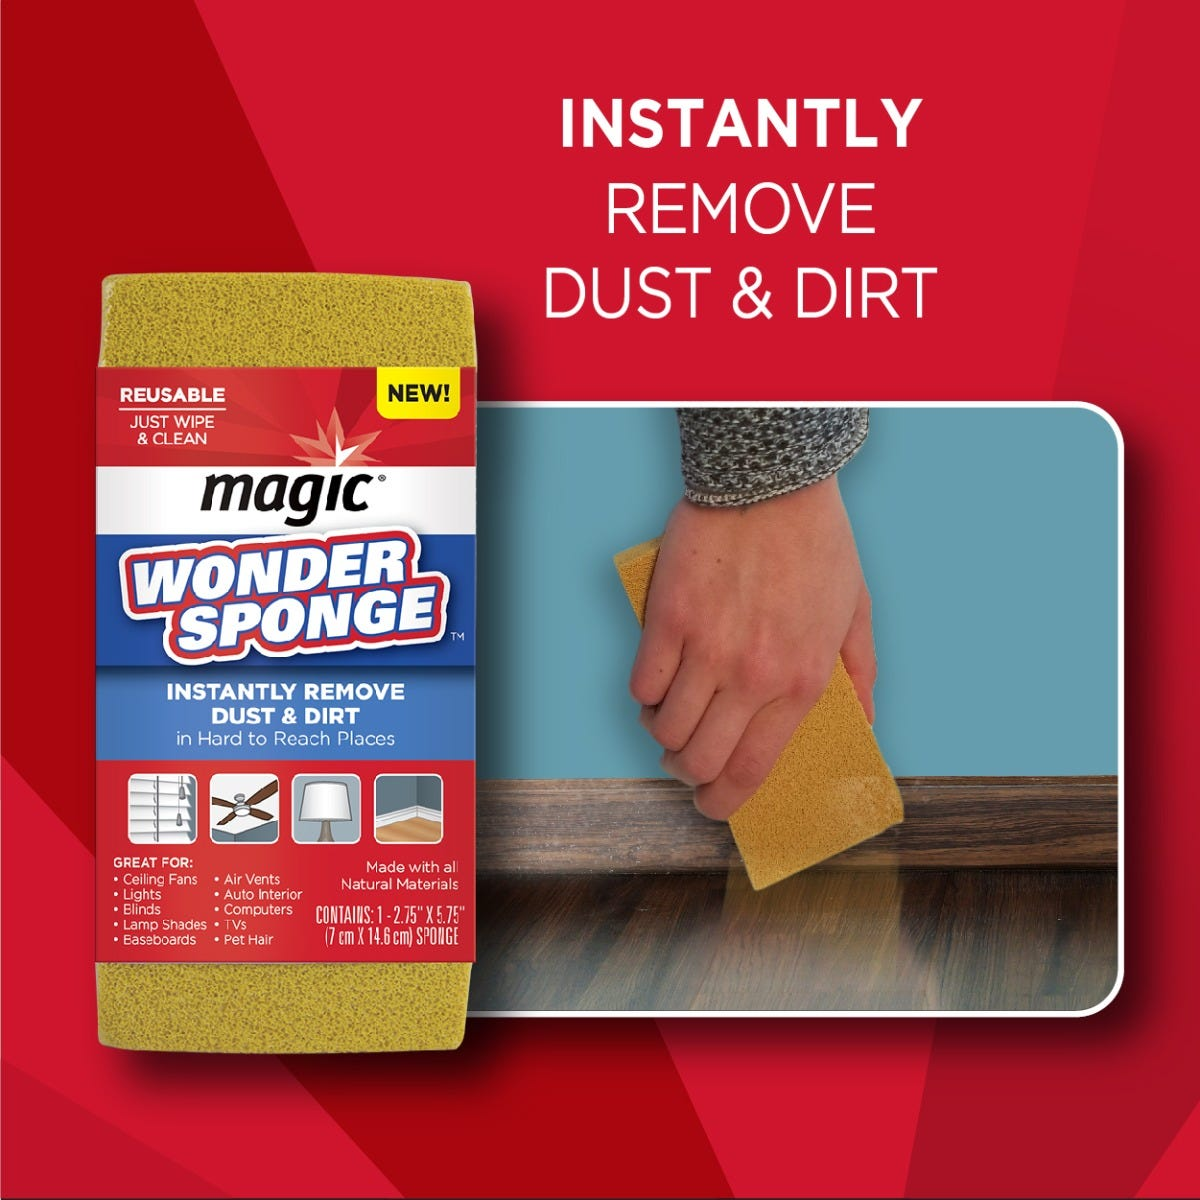 Instantly remove dust and dirt